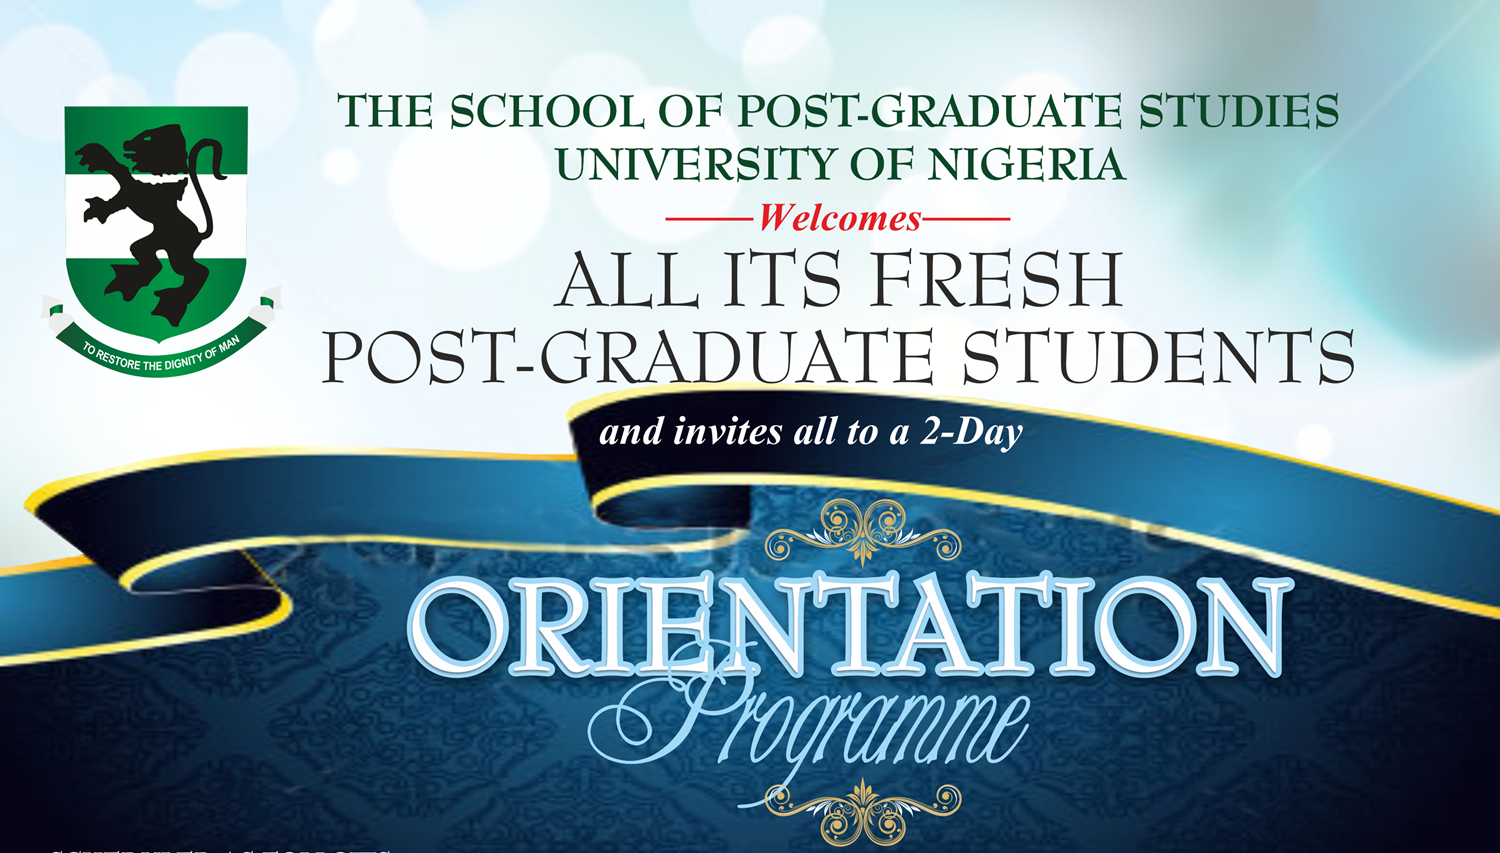 SCHOOL OF POSTGRADUATE STUDIES ORIENTATION PROGRAMME FOR POSTGRADUATE STUDENTS ADMITTED IN 2018/2019 ACADEMIC SESSION IN NSUKKA AND ENUGU CAMPUSES